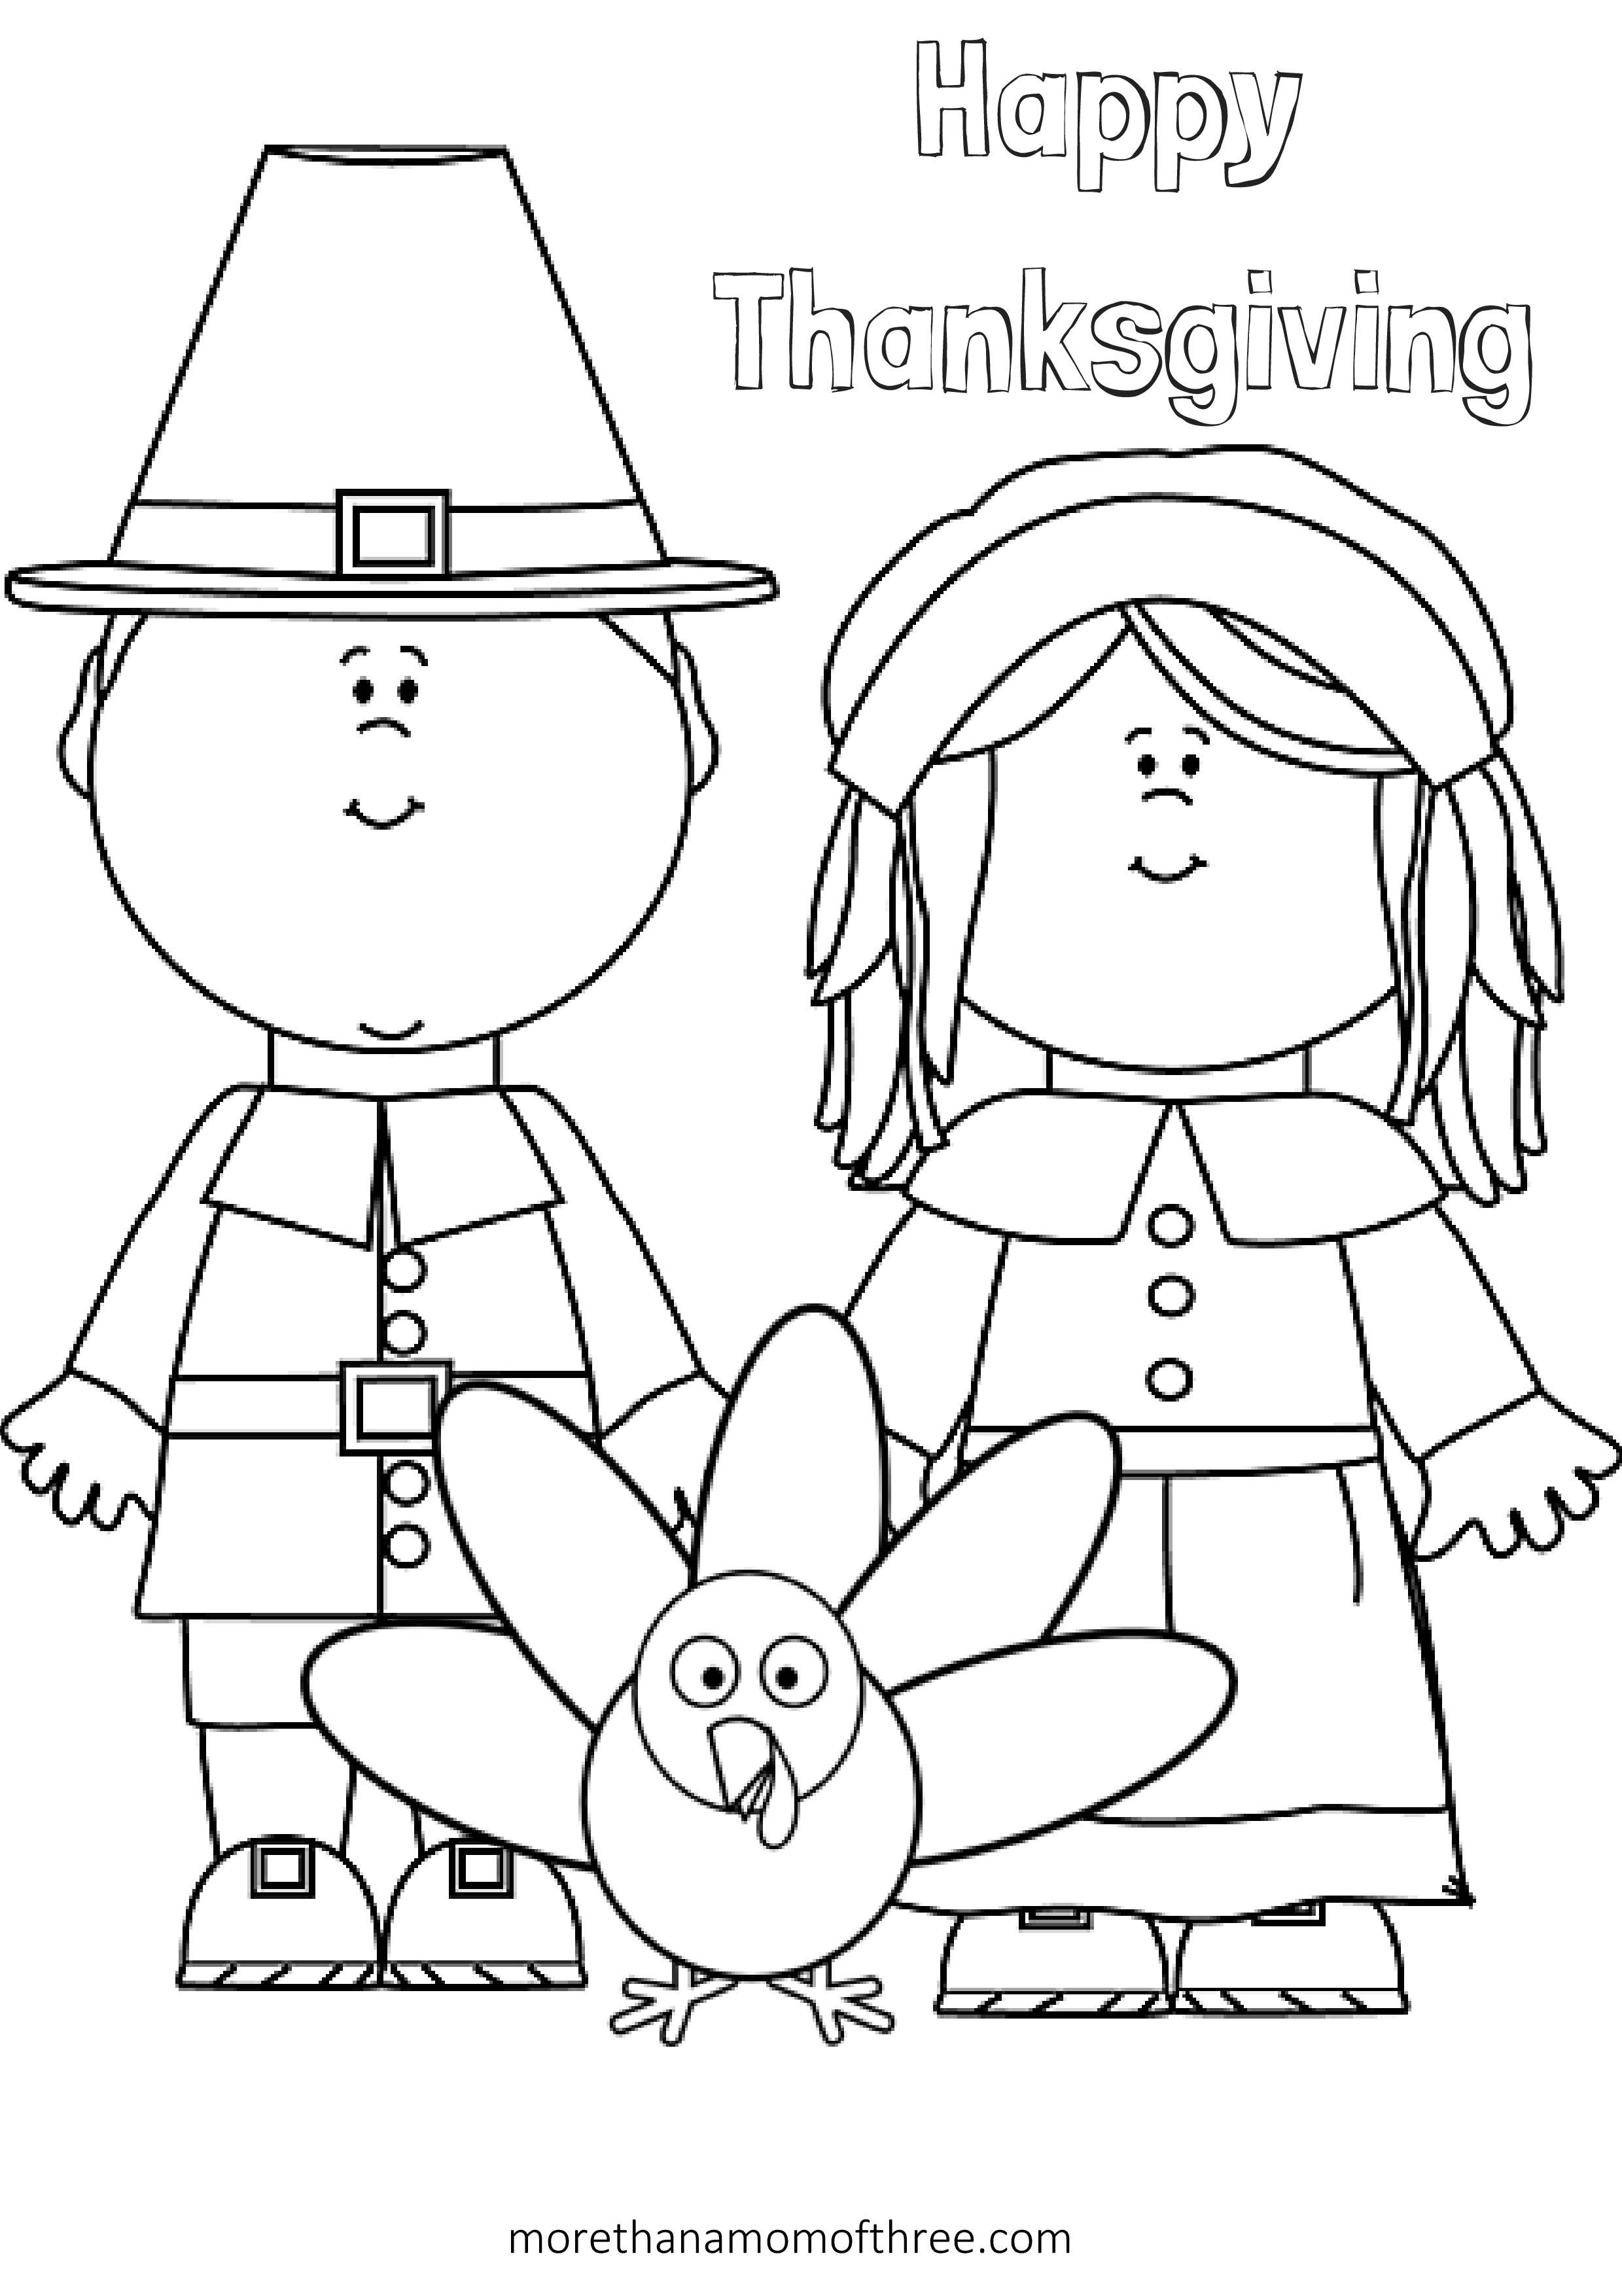 thanksgiving coloring pages free # 4